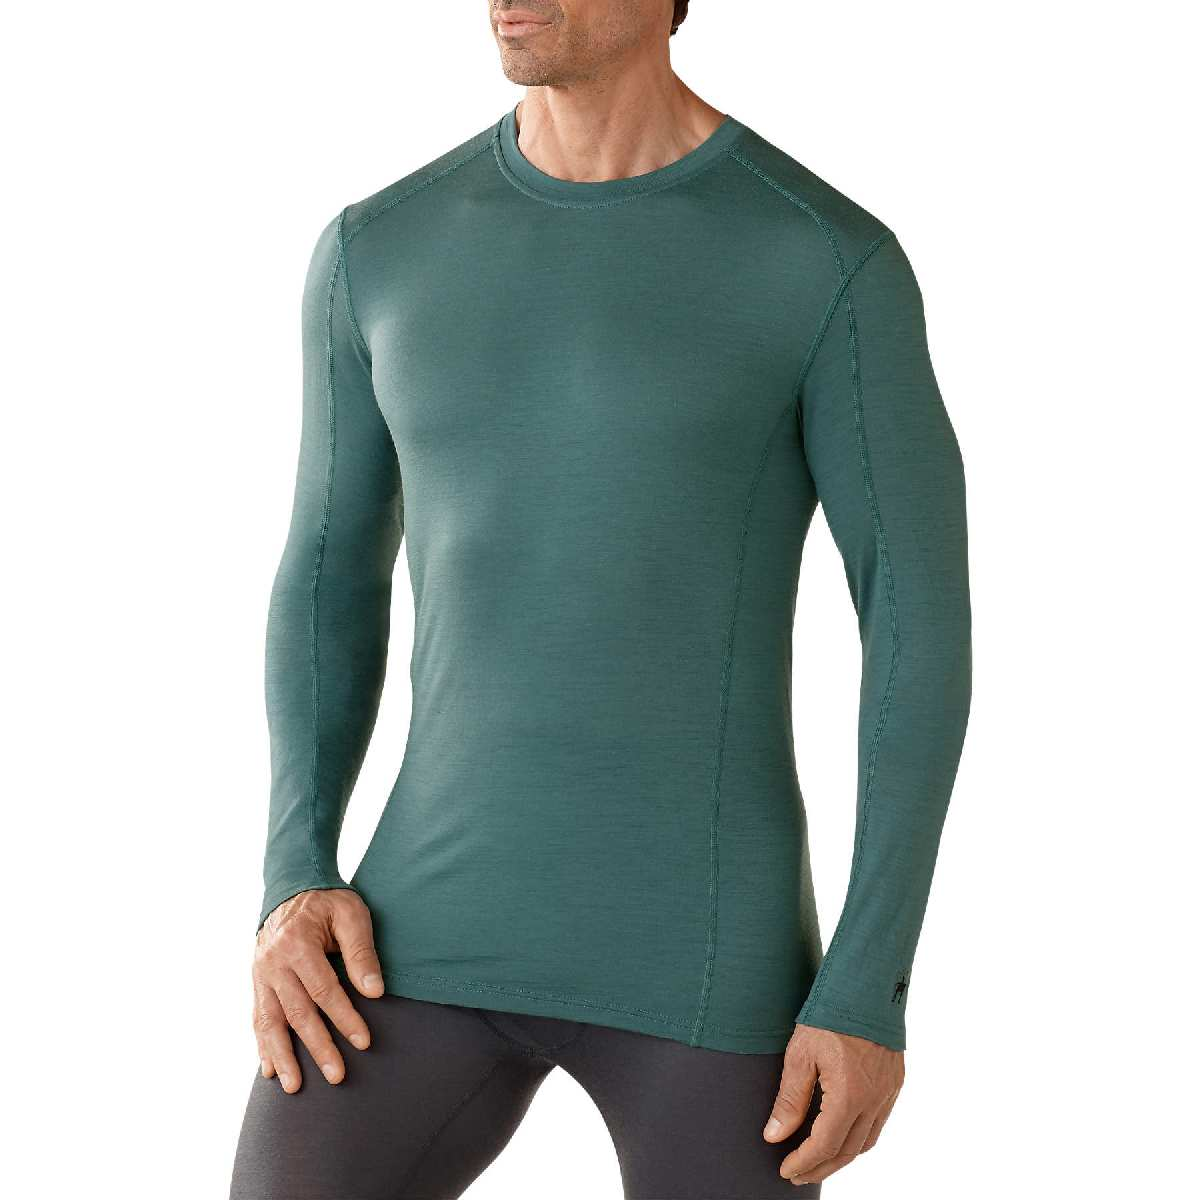 SmartWool NTS Micro 150 Crew Long Sleeve Base Layer Men's Size XXL SeaPine U.S.A. & Canada